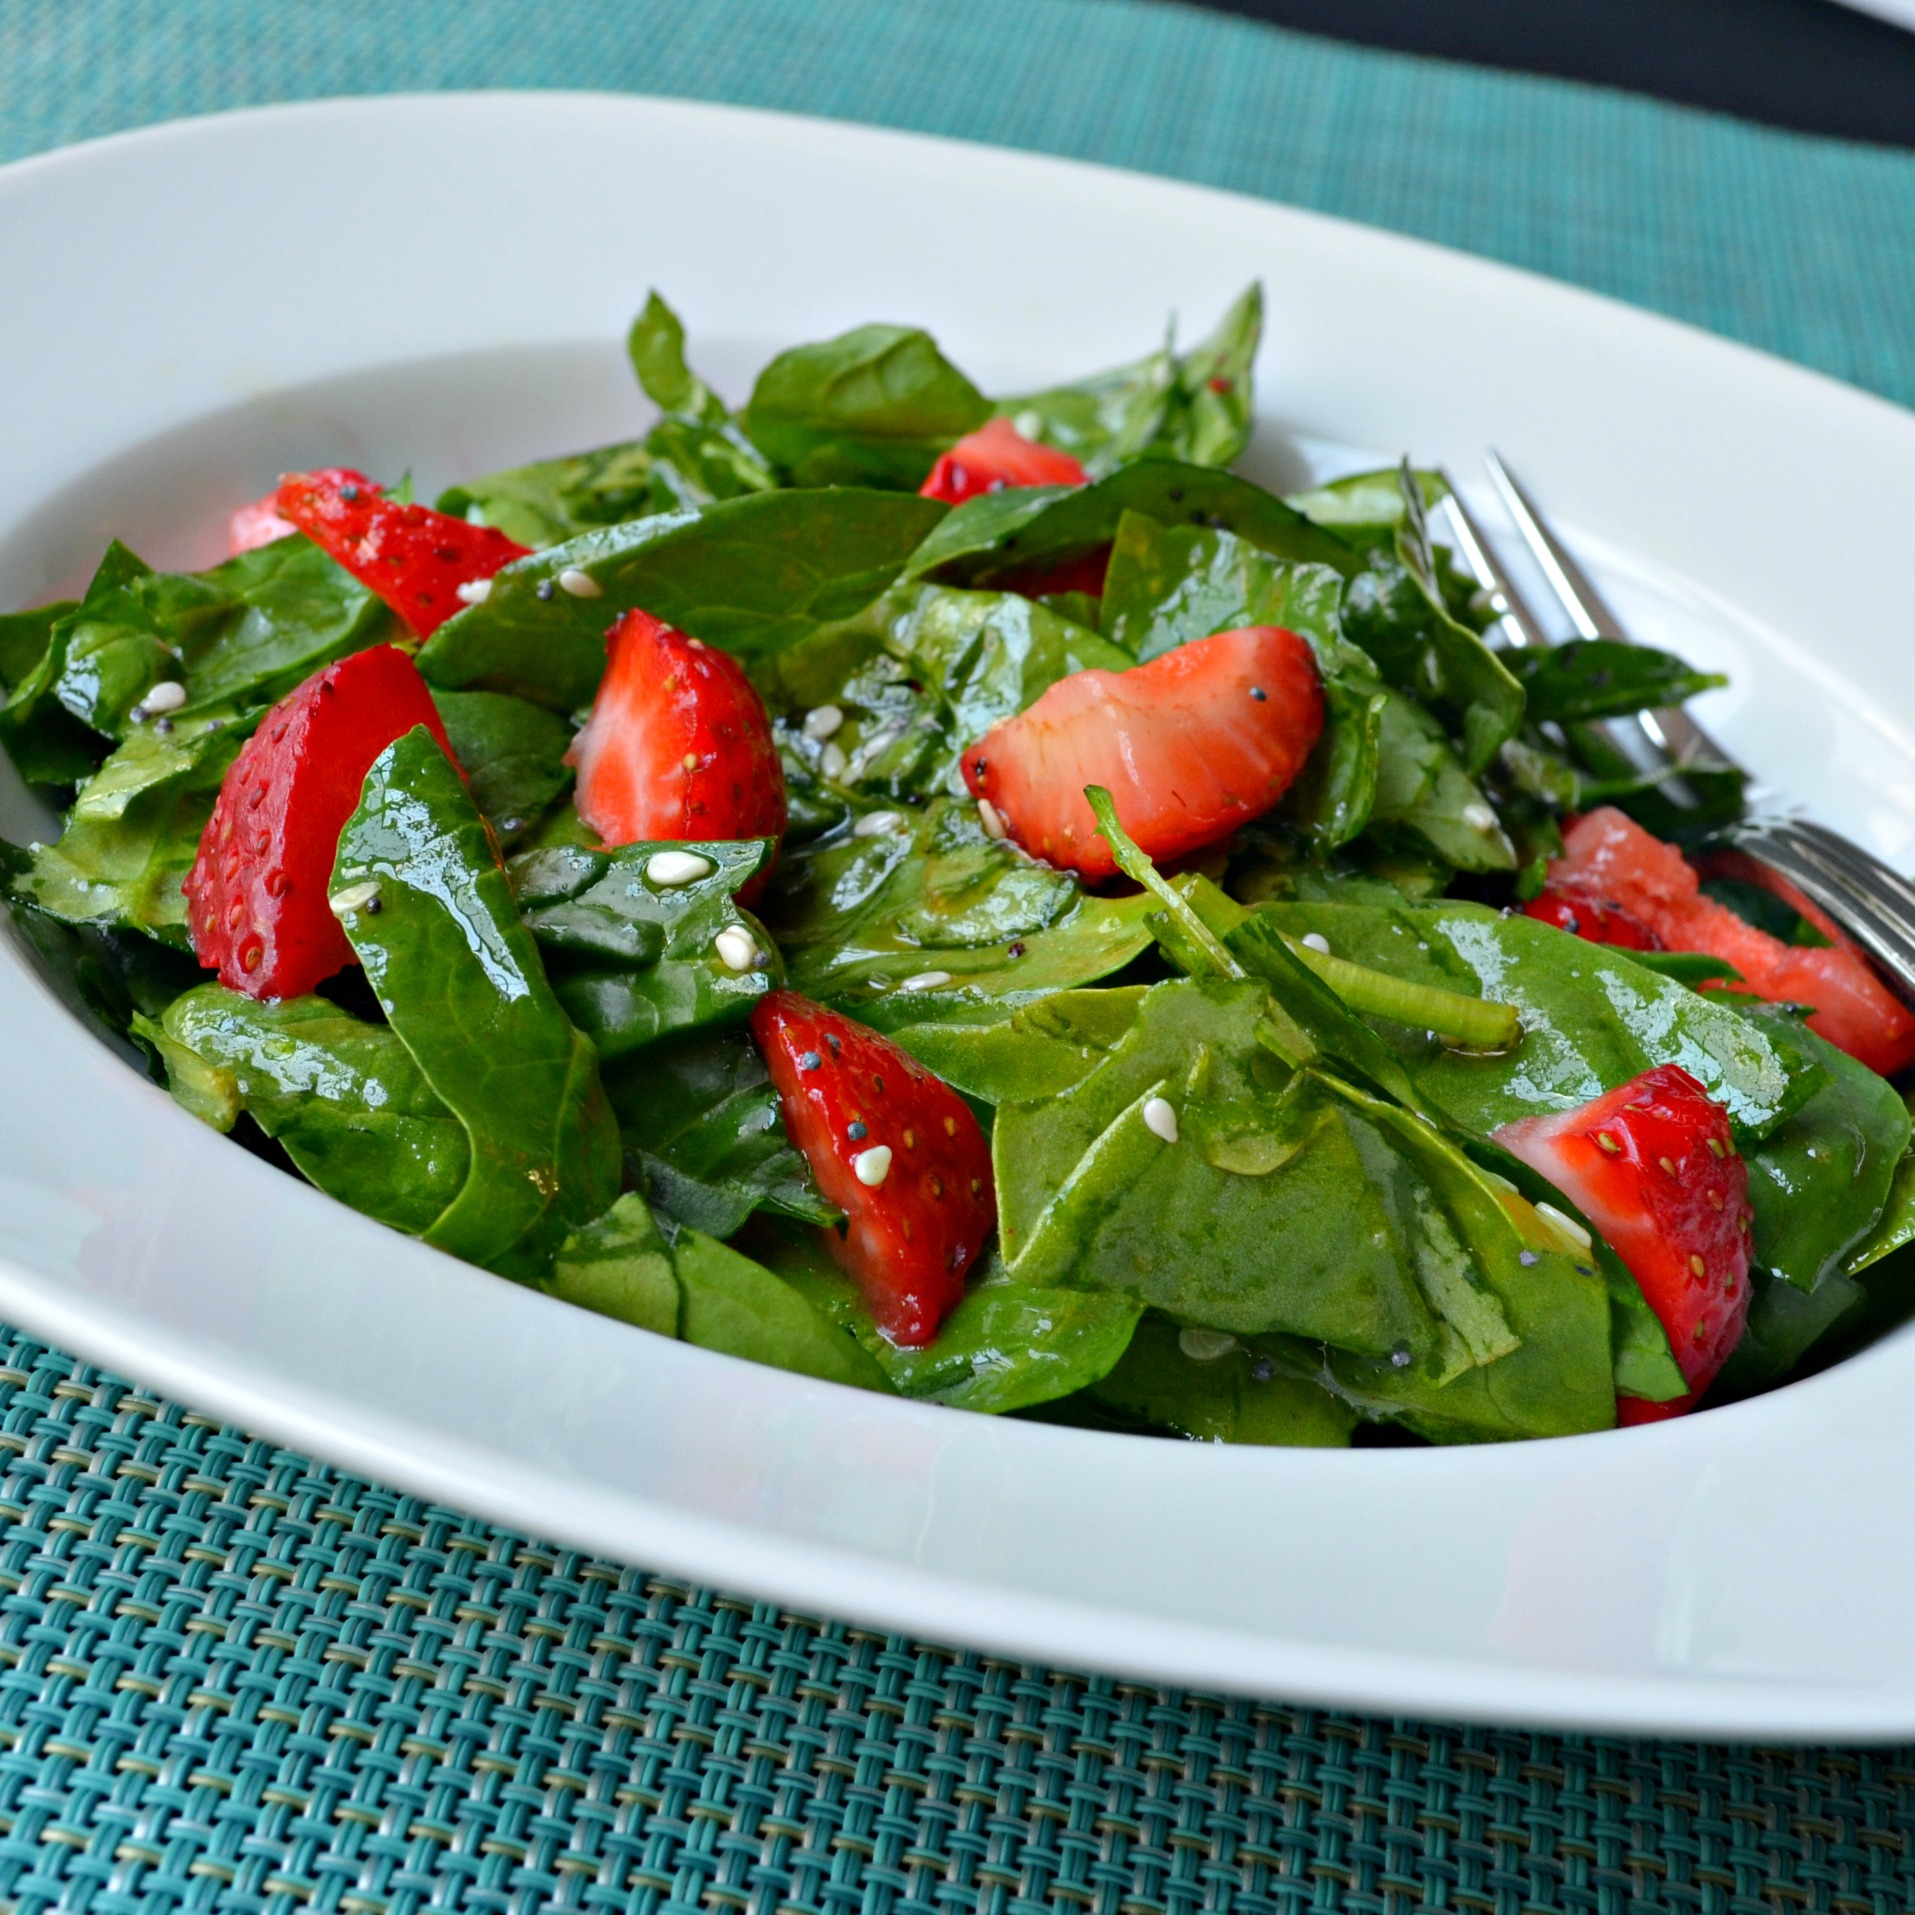 Spinach And Strawberry Salad Recipe Allrecipes